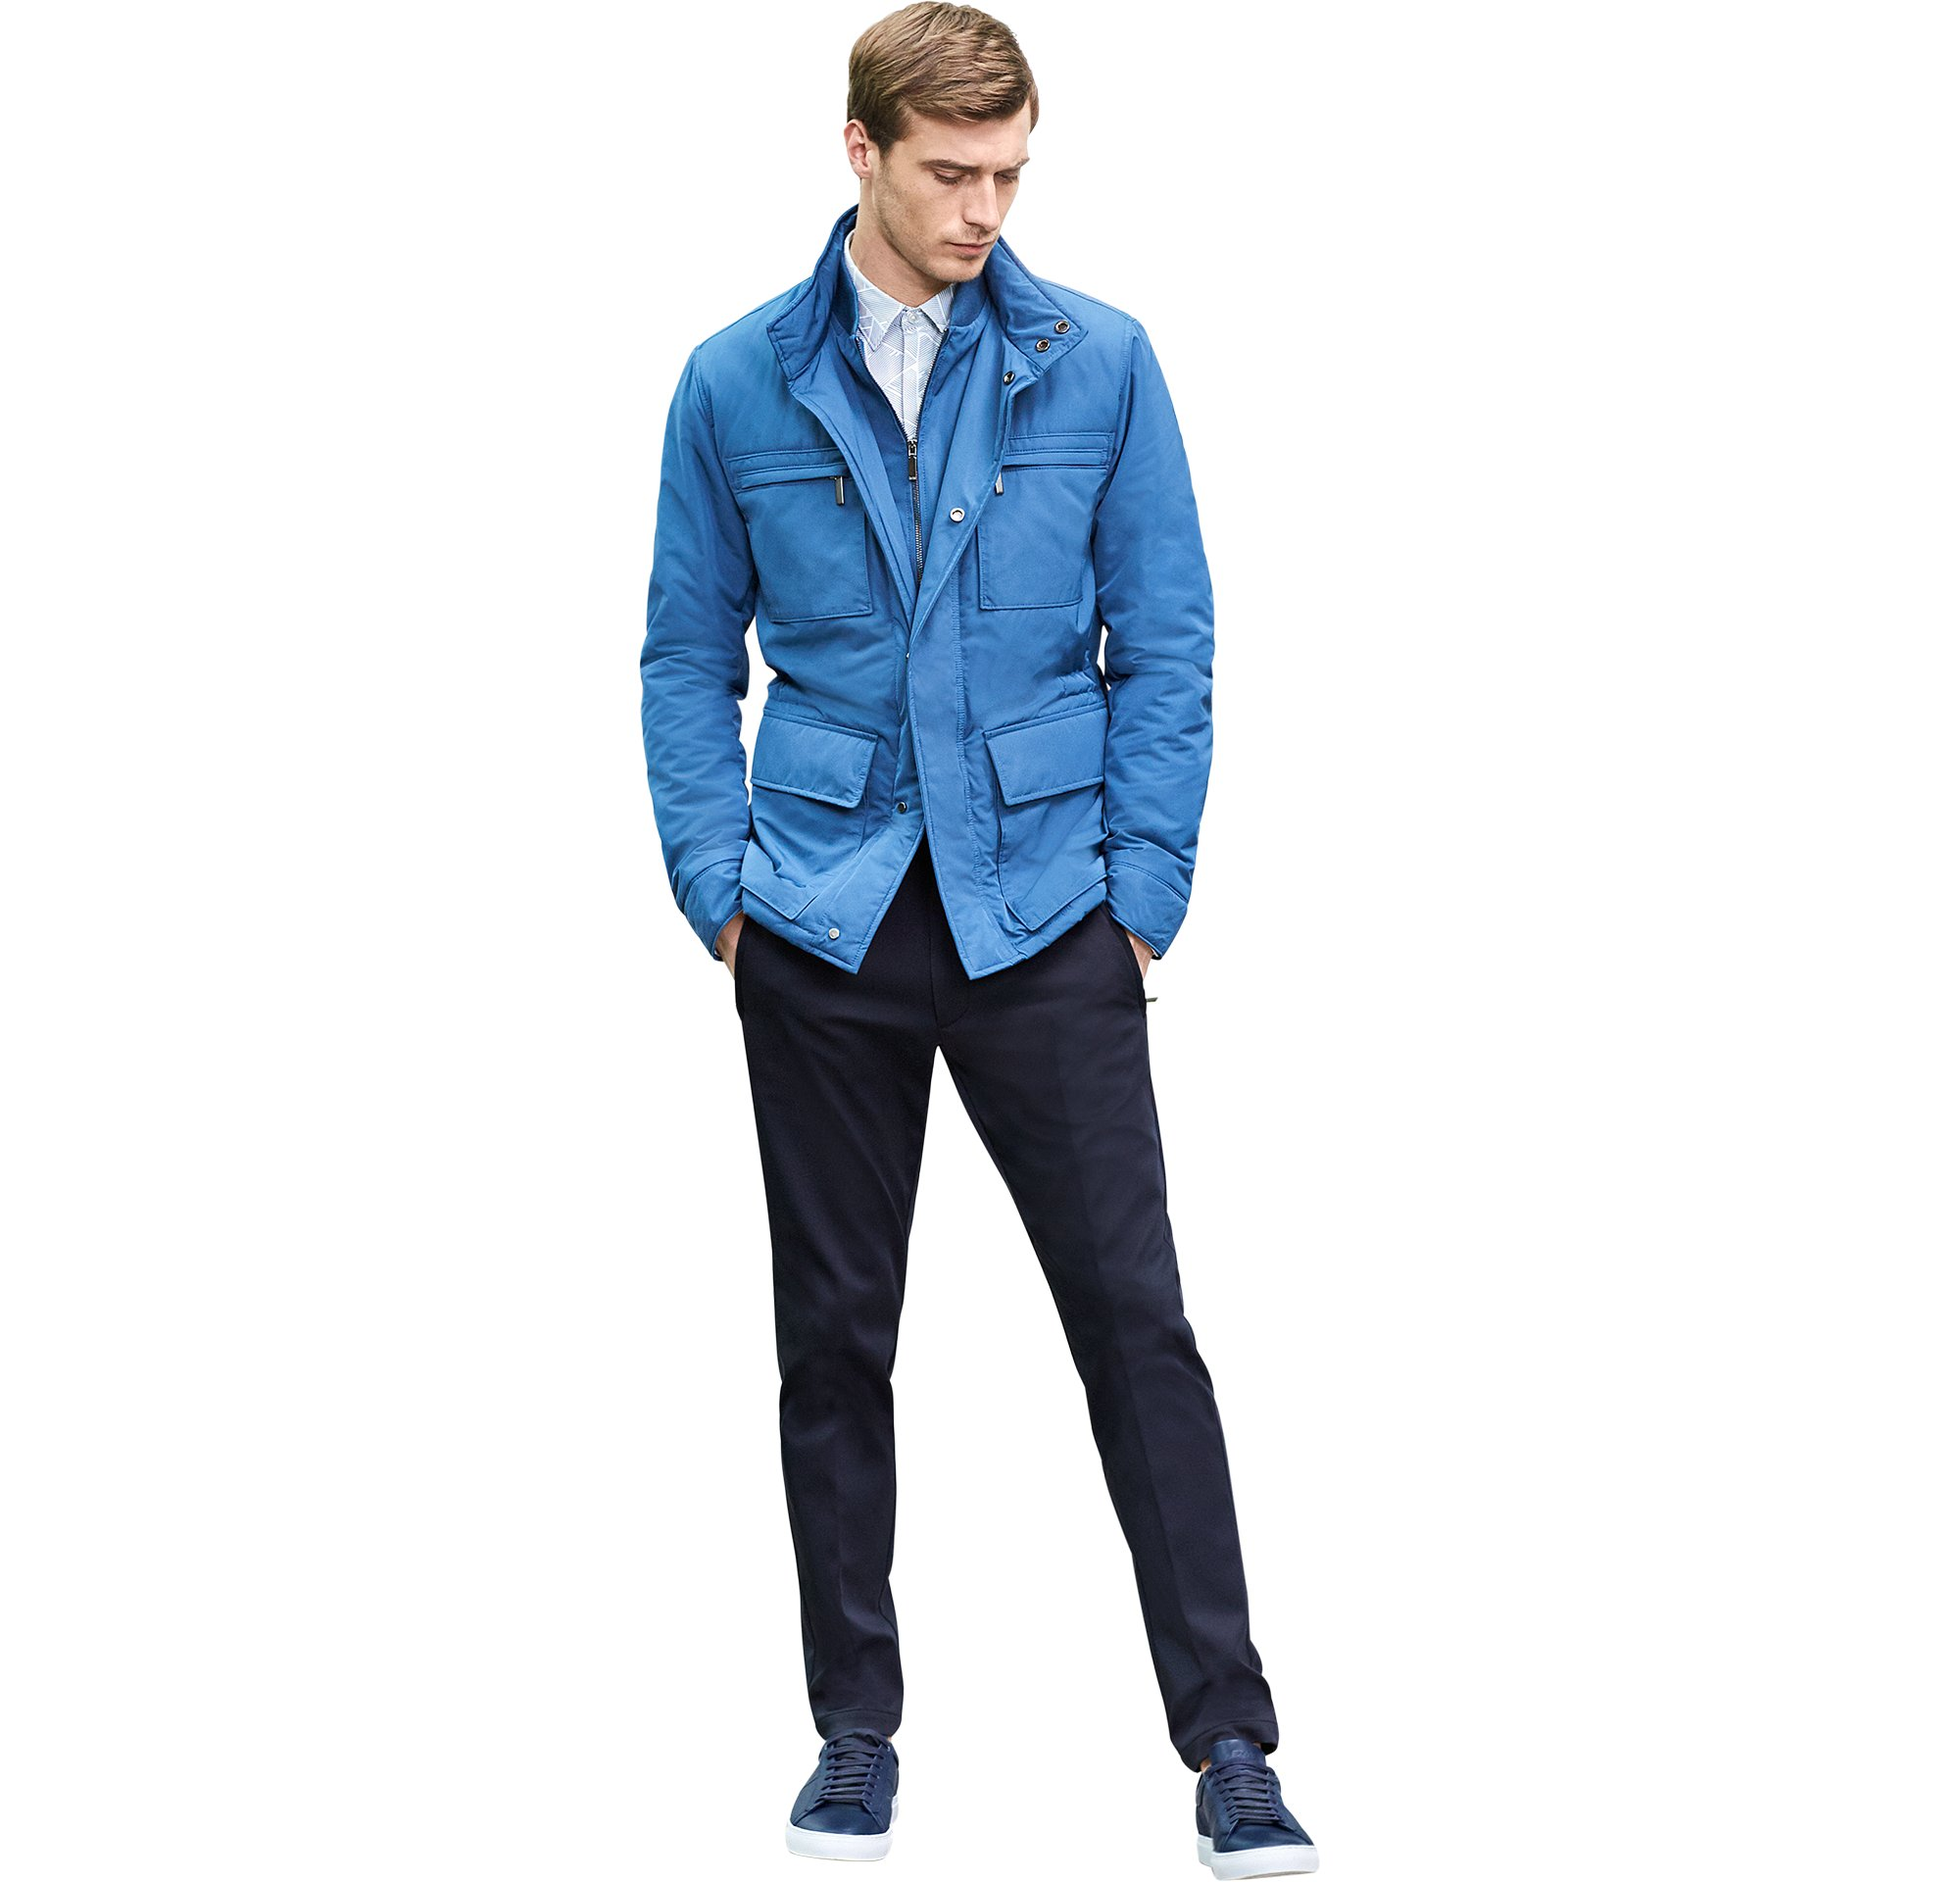 Blue outerwear over white shirt and blue trousers with shoes by BOSS